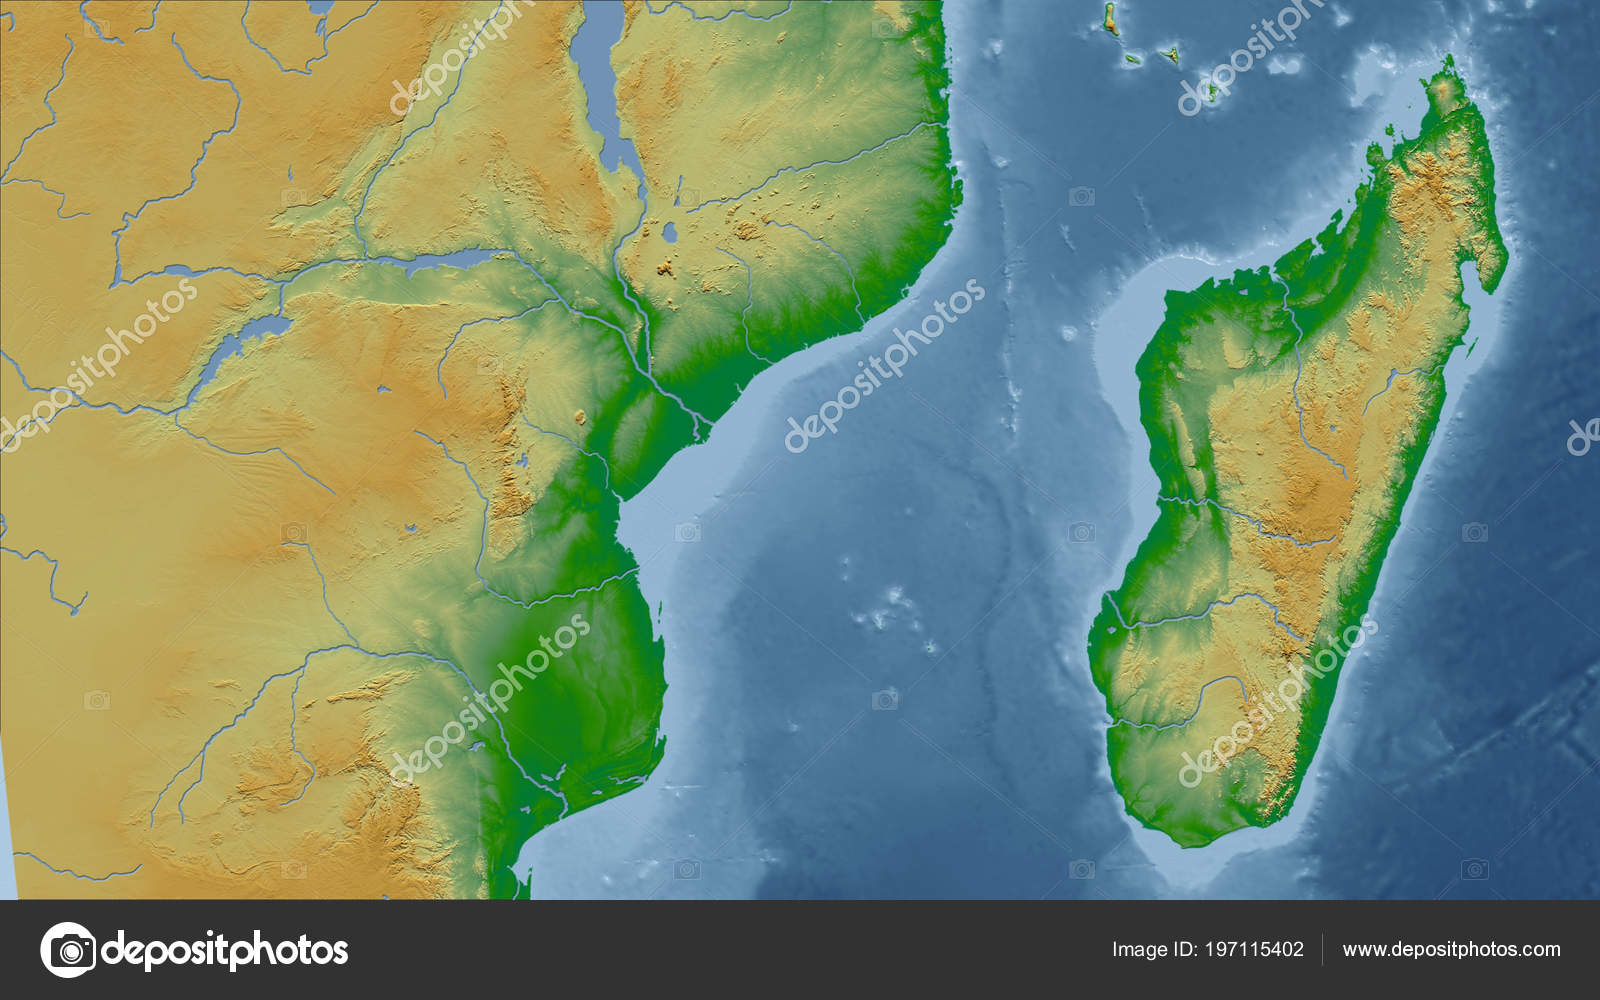 Physical Map Of Madagascar on physical map of lake tanganyika, physical map of southern italy, physical map of the canadian shield, physical map of bodies of water, physical map of republic of congo, physical map of the amazon, physical map of the virgin islands, physical map of california, mountain ranges in madagascar, physical map of peru, physical map of cape of good hope, physical map of orange river, physical map of cuba, physical map of nauru, physical map of u.s.a, physical map of turkey, physical map of new brunswick canada, major land features in madagascar, physical map of pampas, physical map of sweden,